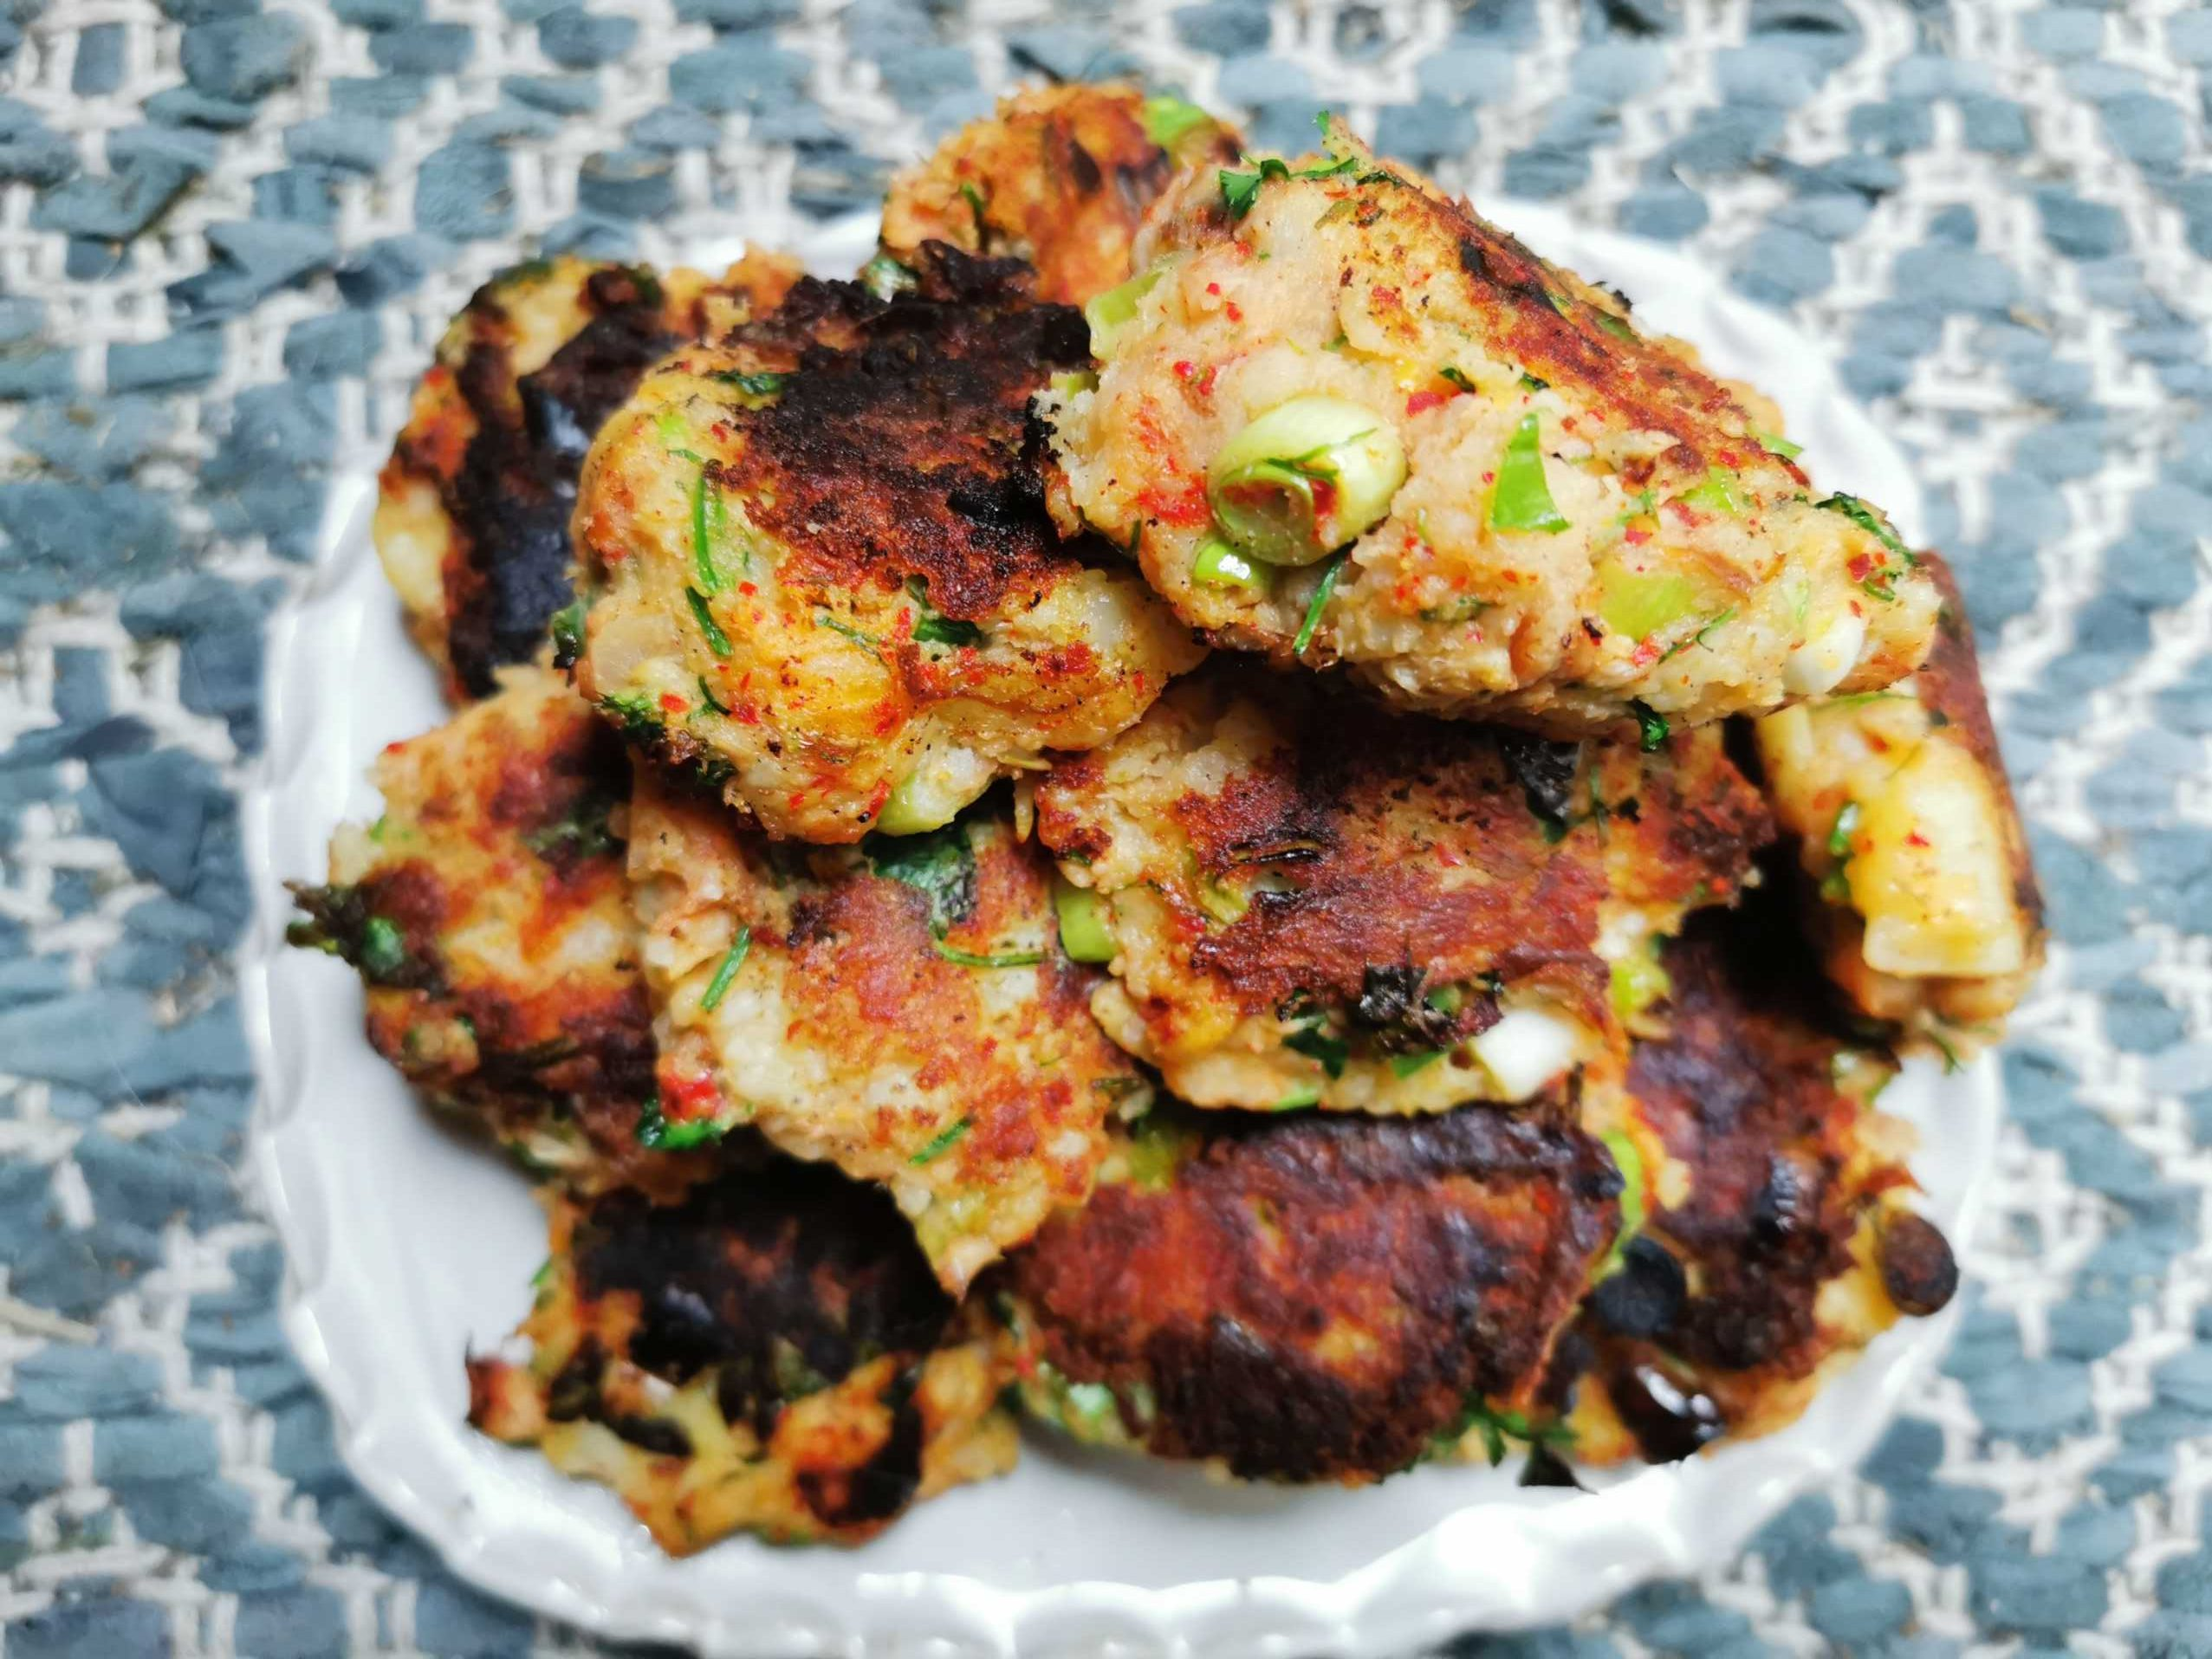 BASIC FISHCAKE RECIPE